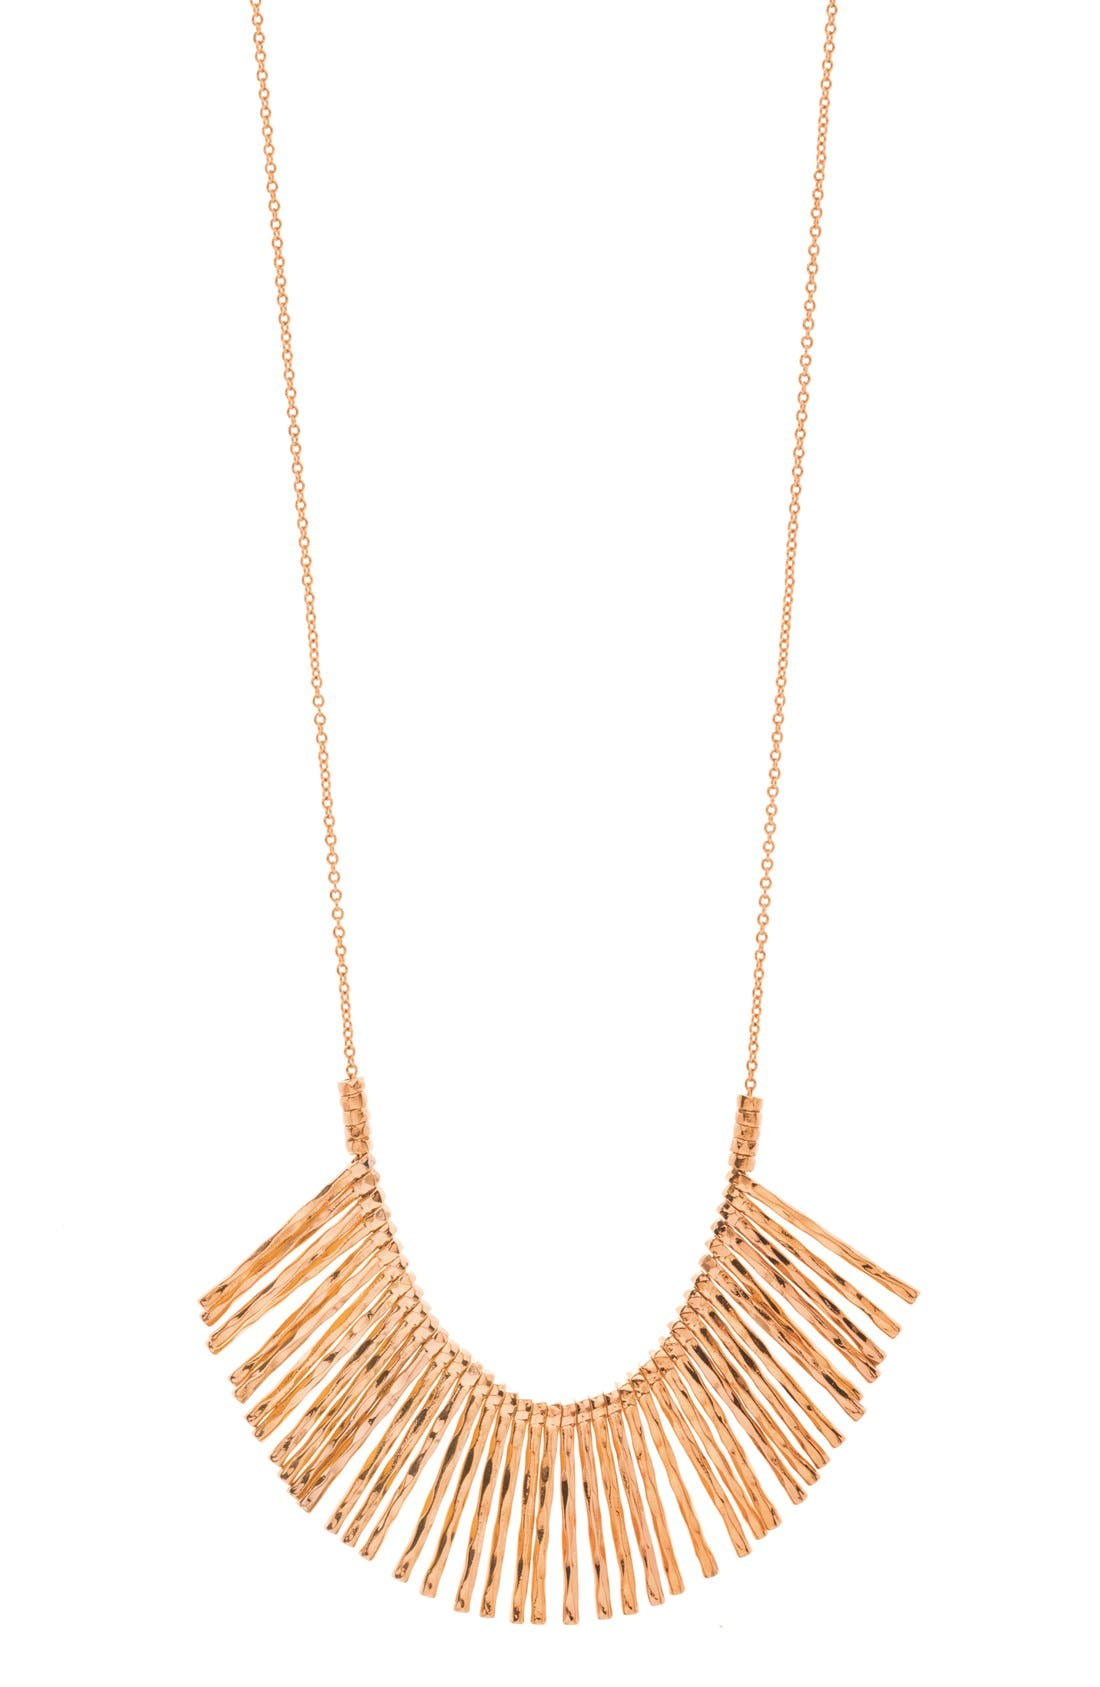 Alternate Image 1 Selected - gorjana 'Kylie' Fan Necklace